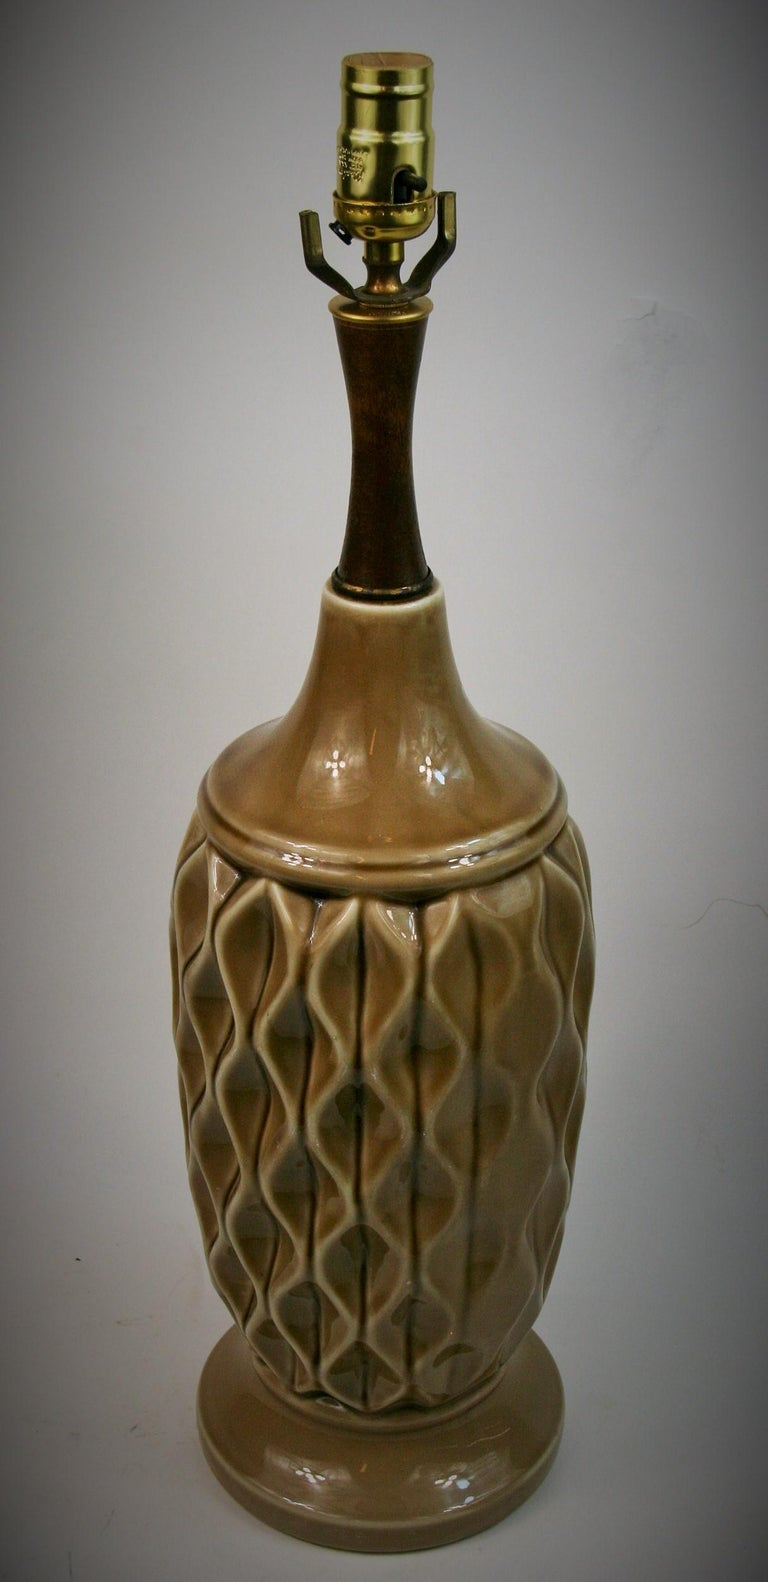 Ceramic Table Lamp with Geometric Detailing, 1970s For Sale 2